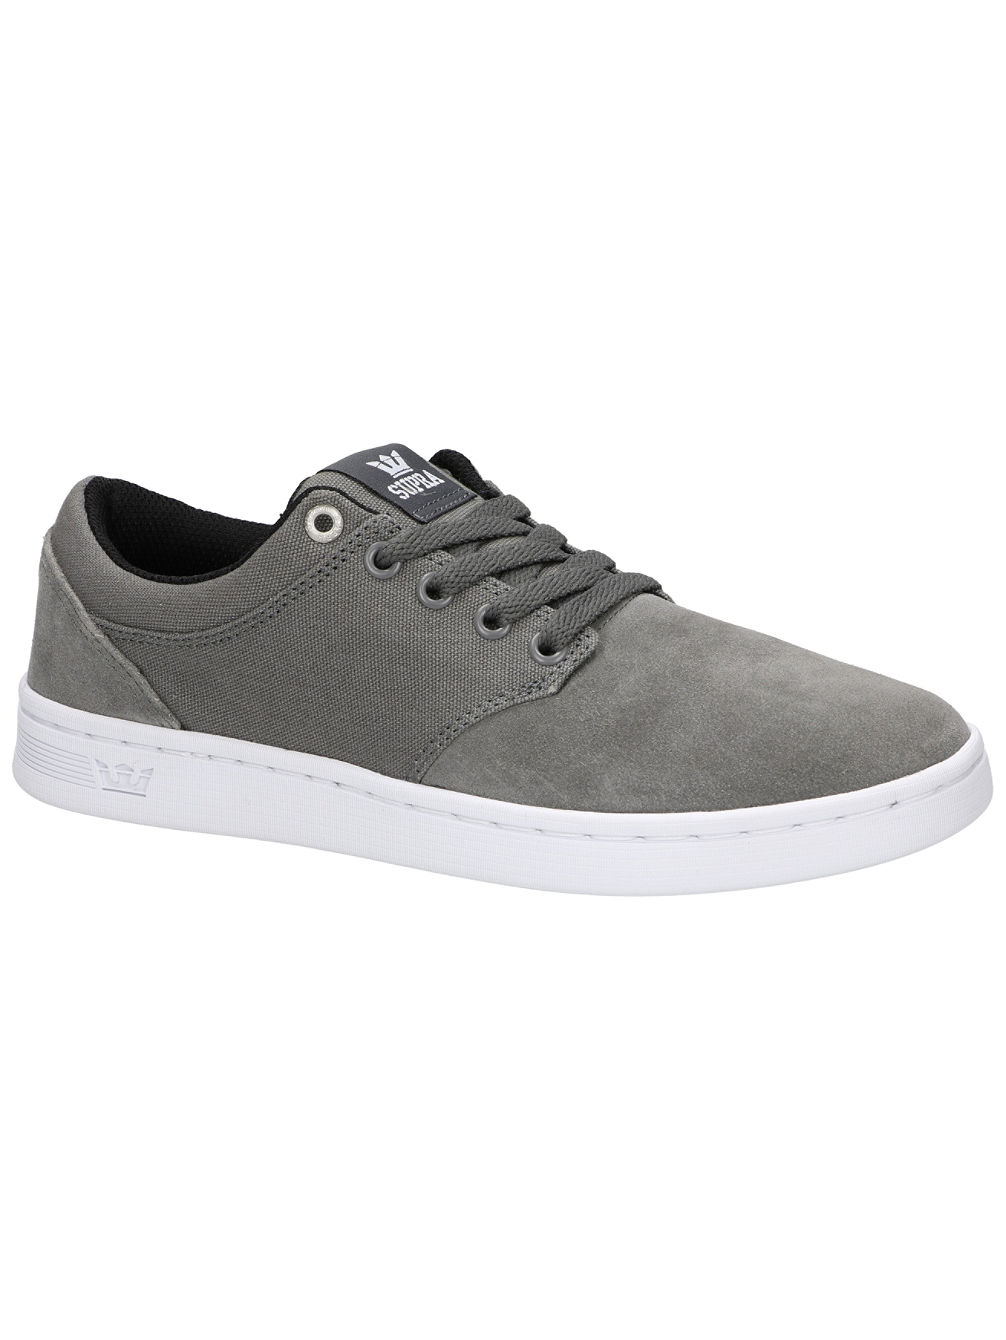 Chino Court Skate Shoes